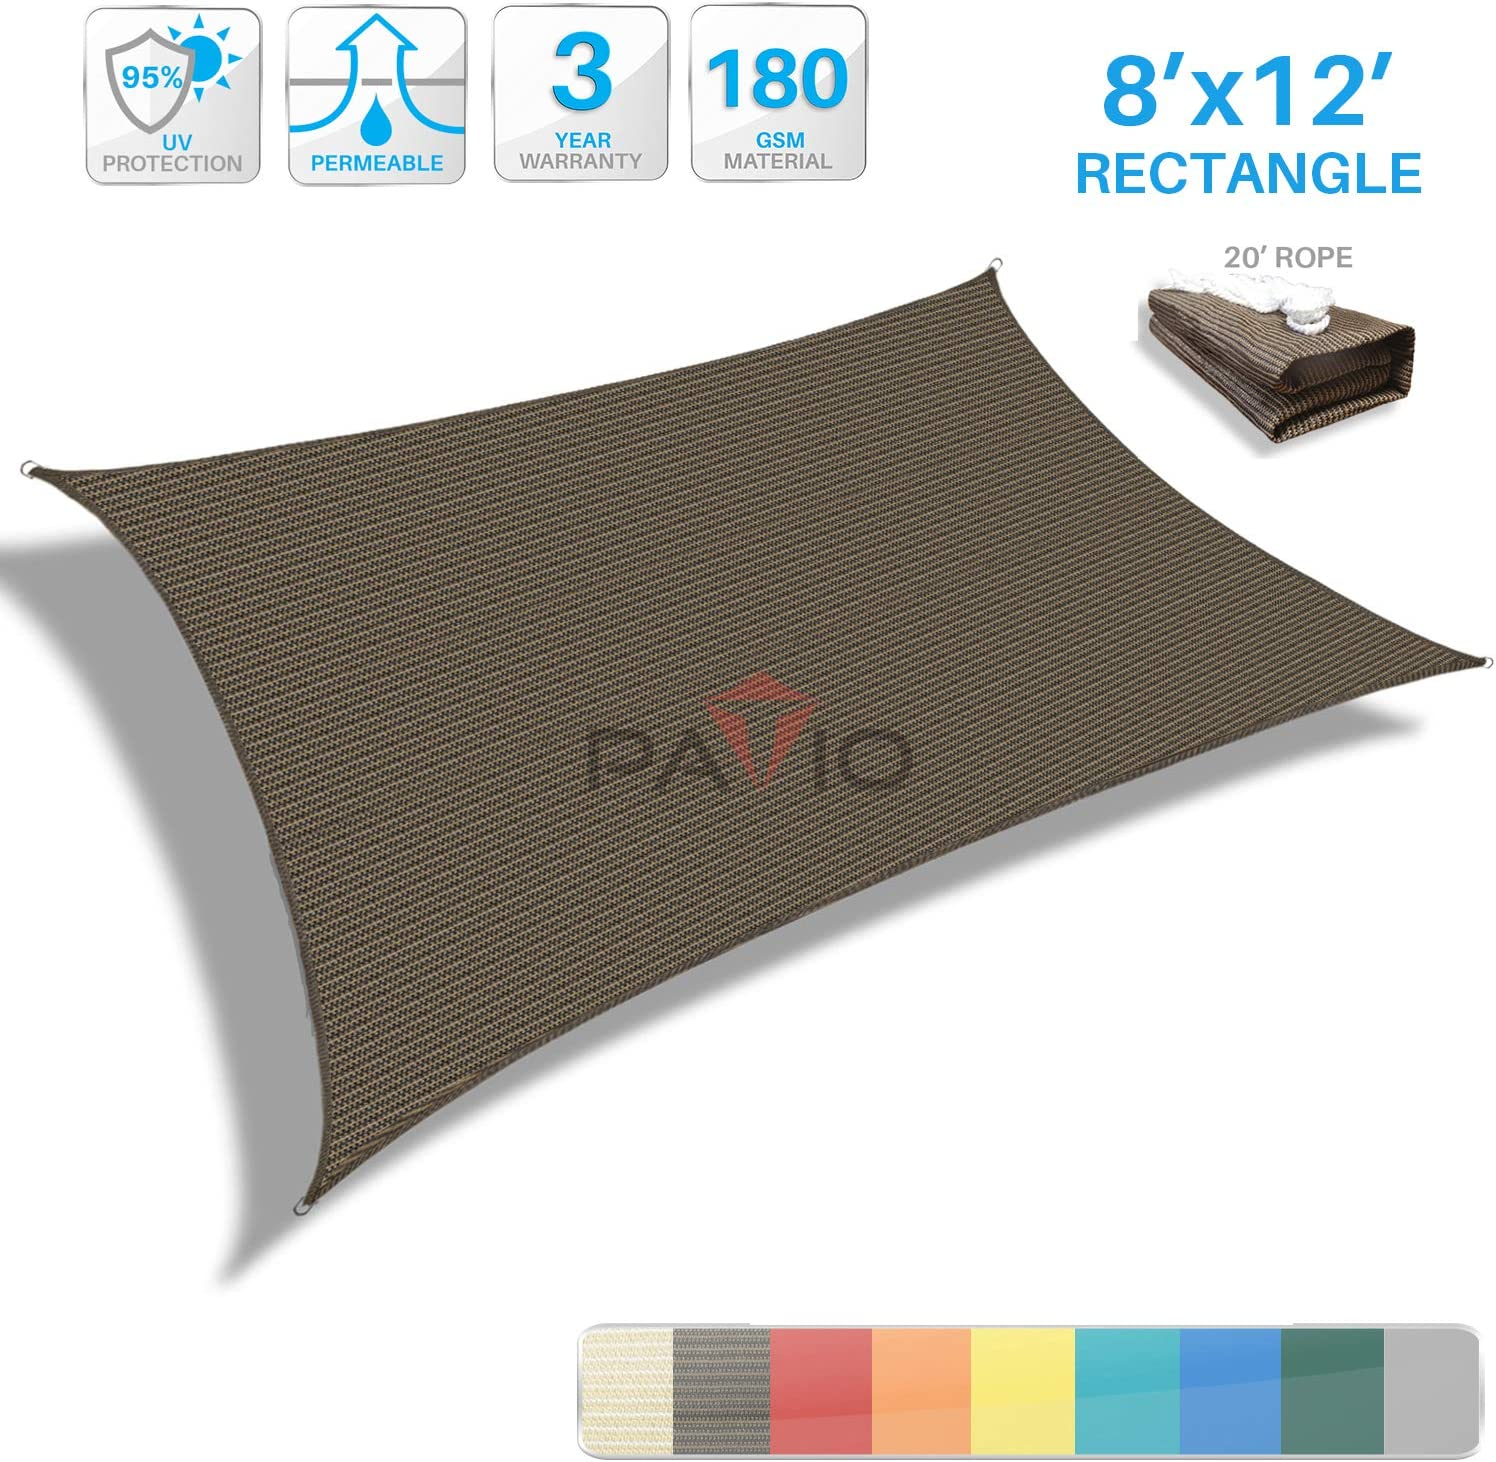 Patio Paradise 8' x 12' Brown Sun Shade Sail Rectangle Canopy - Permeable UV Block Fabric Durable Outdoor - Customized Available